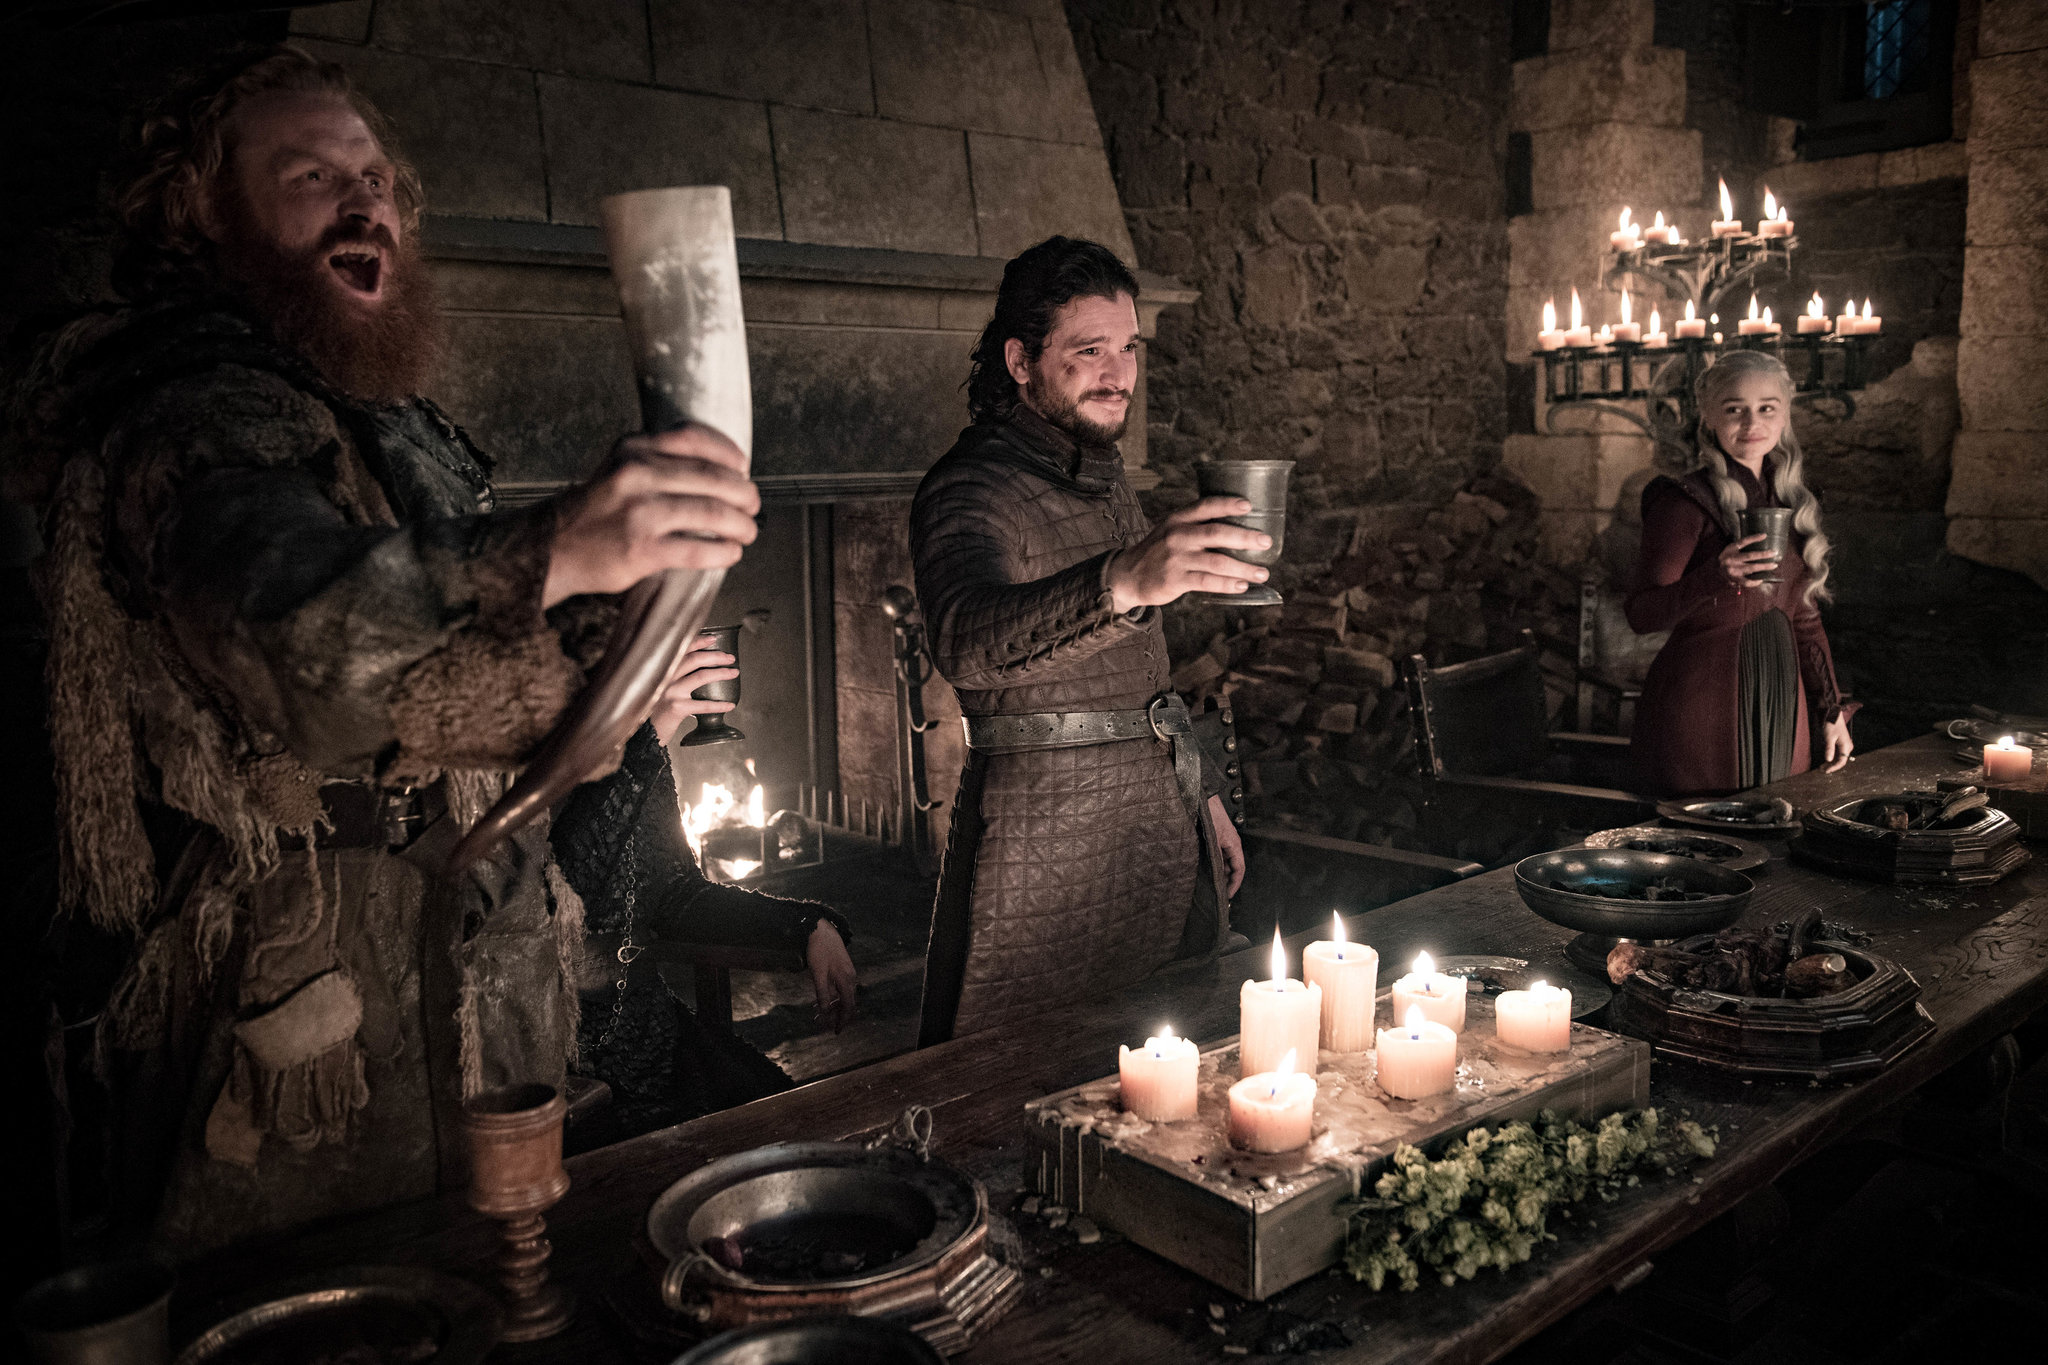 Game of Thrones art director says coffee cup gaffe is being